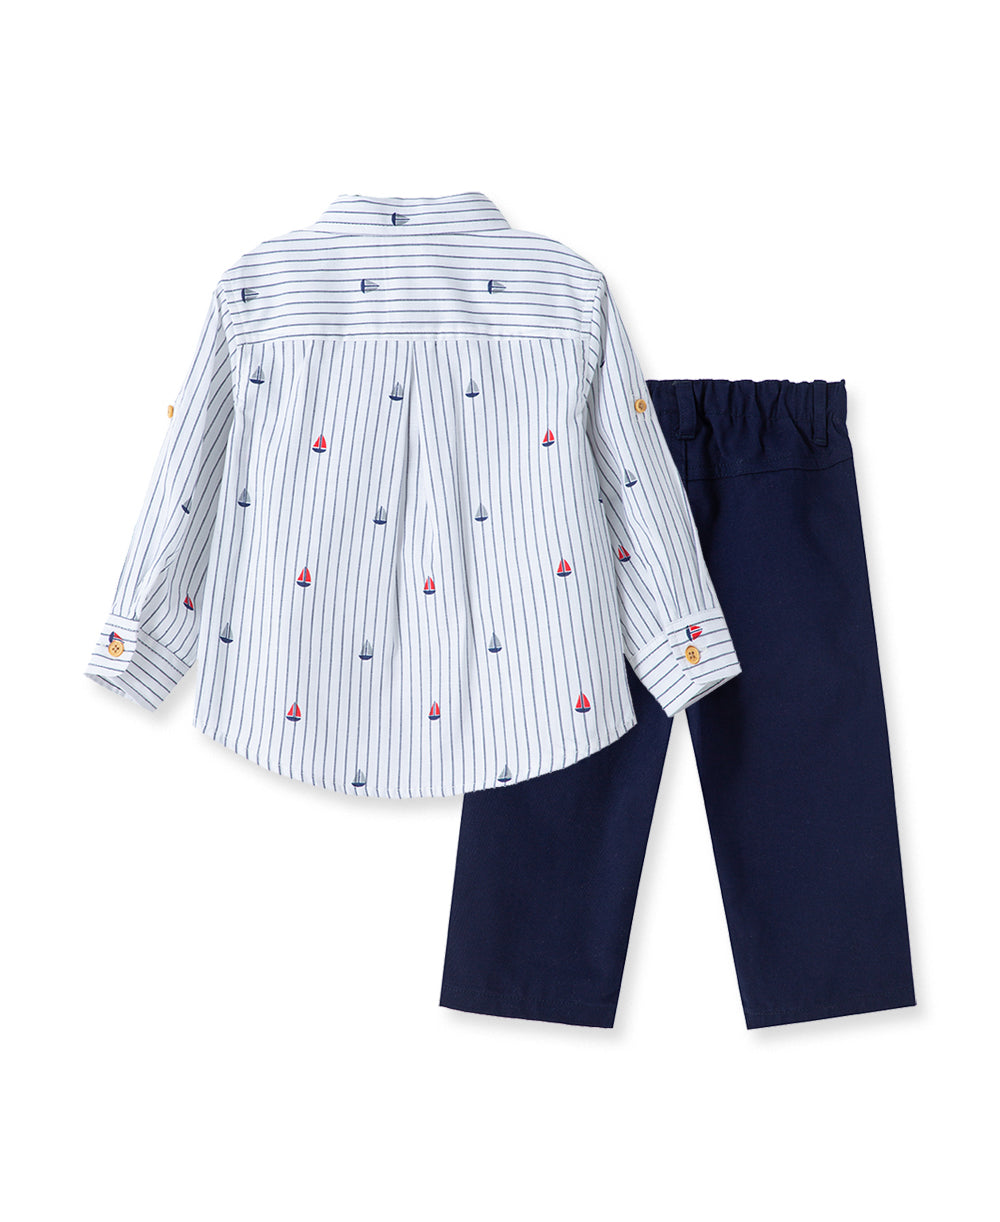 Nautical Woven Toddler Pant Set